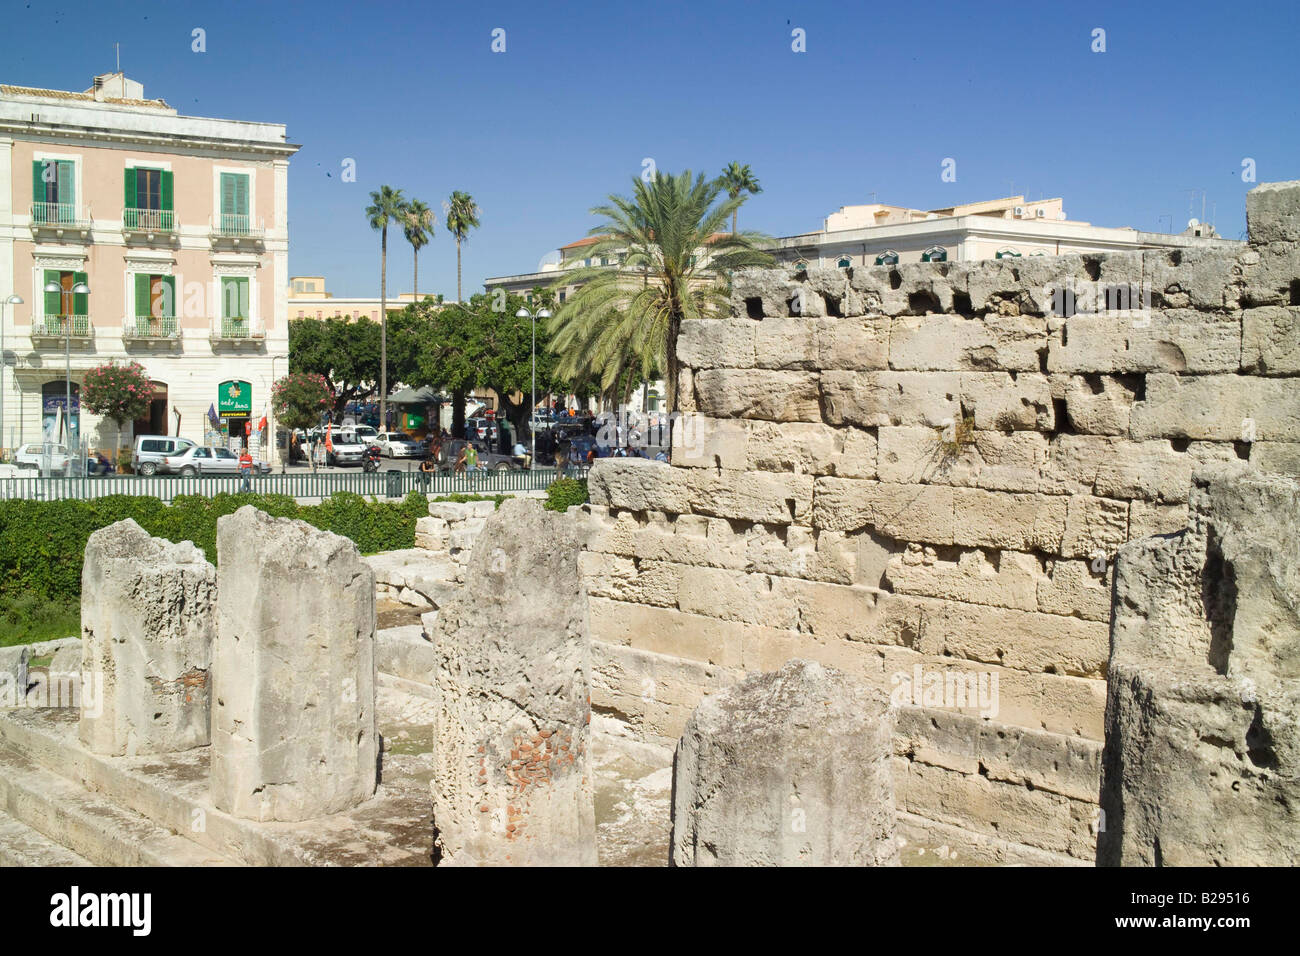 Temple of Apollo Syracusa Sicily Date 28 05 2008 Ref ZB693 114320 0032 COMPULSORY CREDIT World Pictures Photoshot - Stock Image